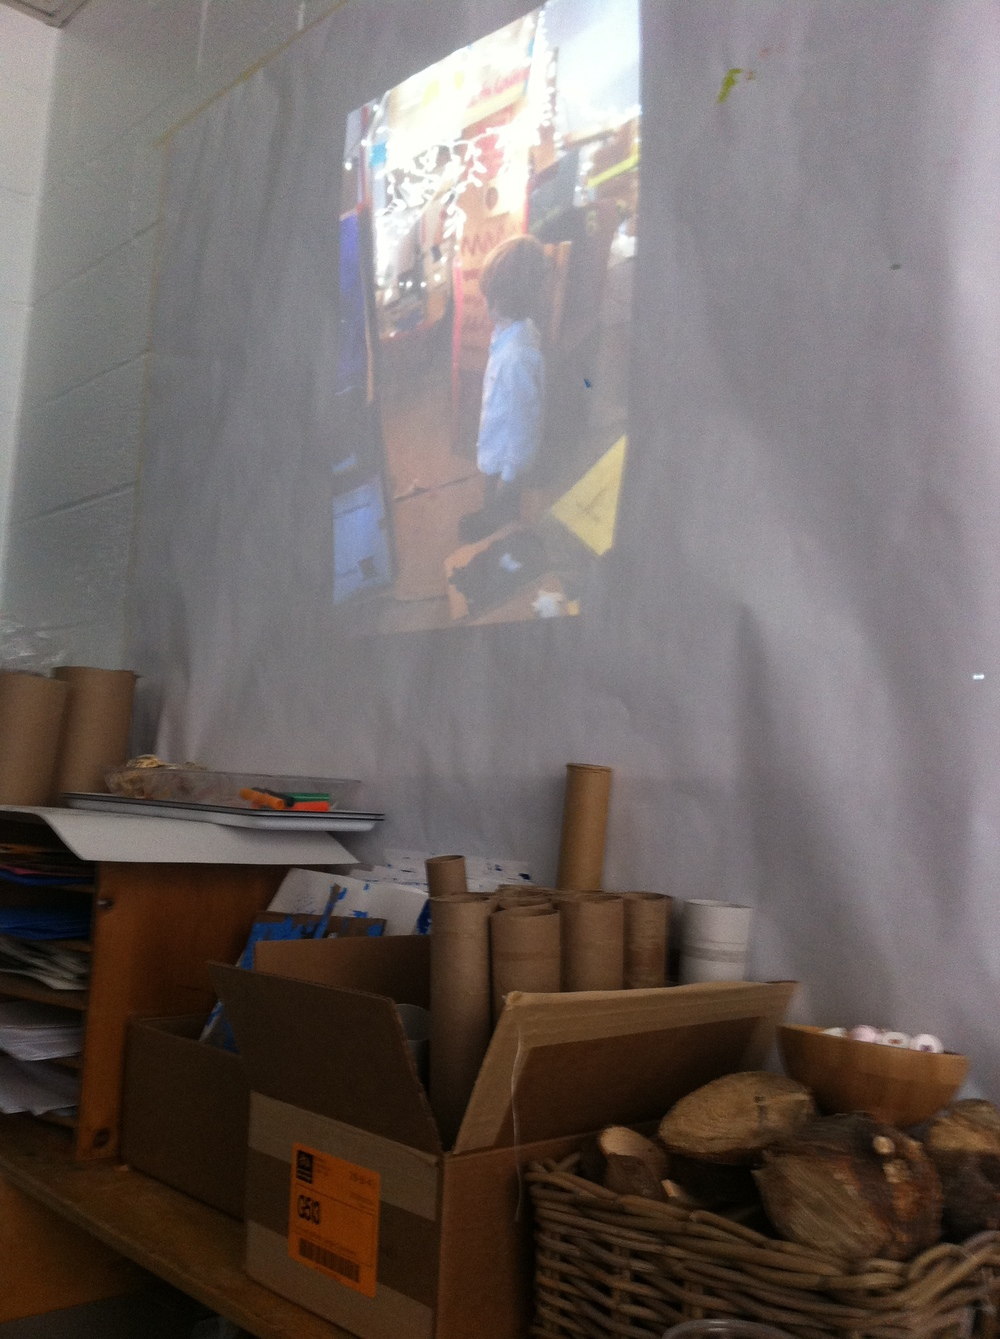 So fun to see our Cardboard Challenge movie projected behind the cardboard making workshop in the 3-4's room at the 14th St Y.